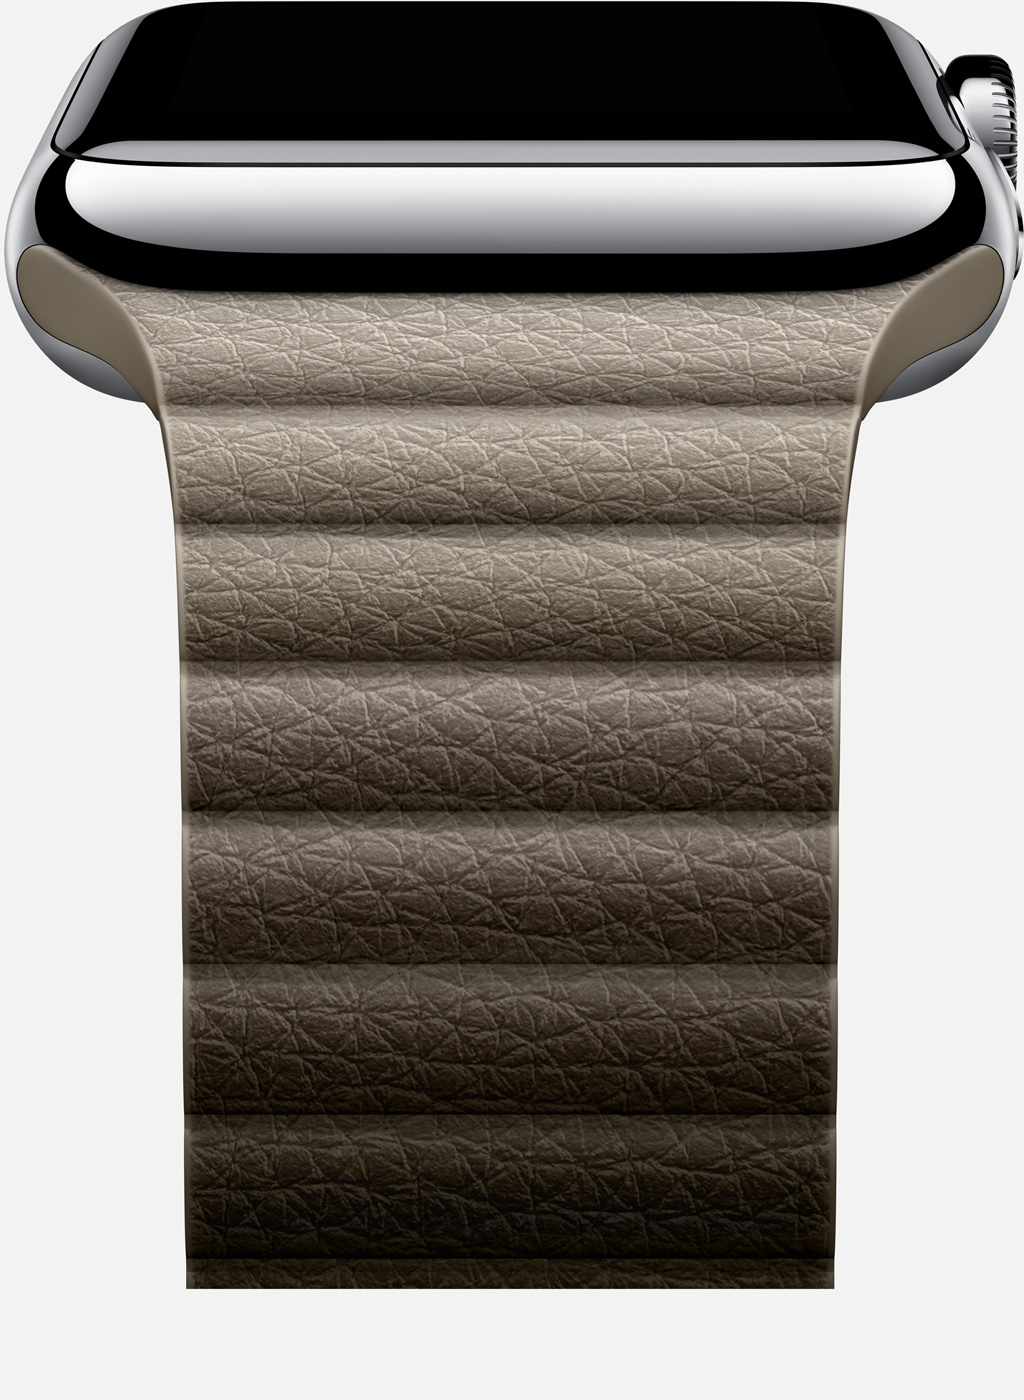 Official-Apple-Watch-images (20)